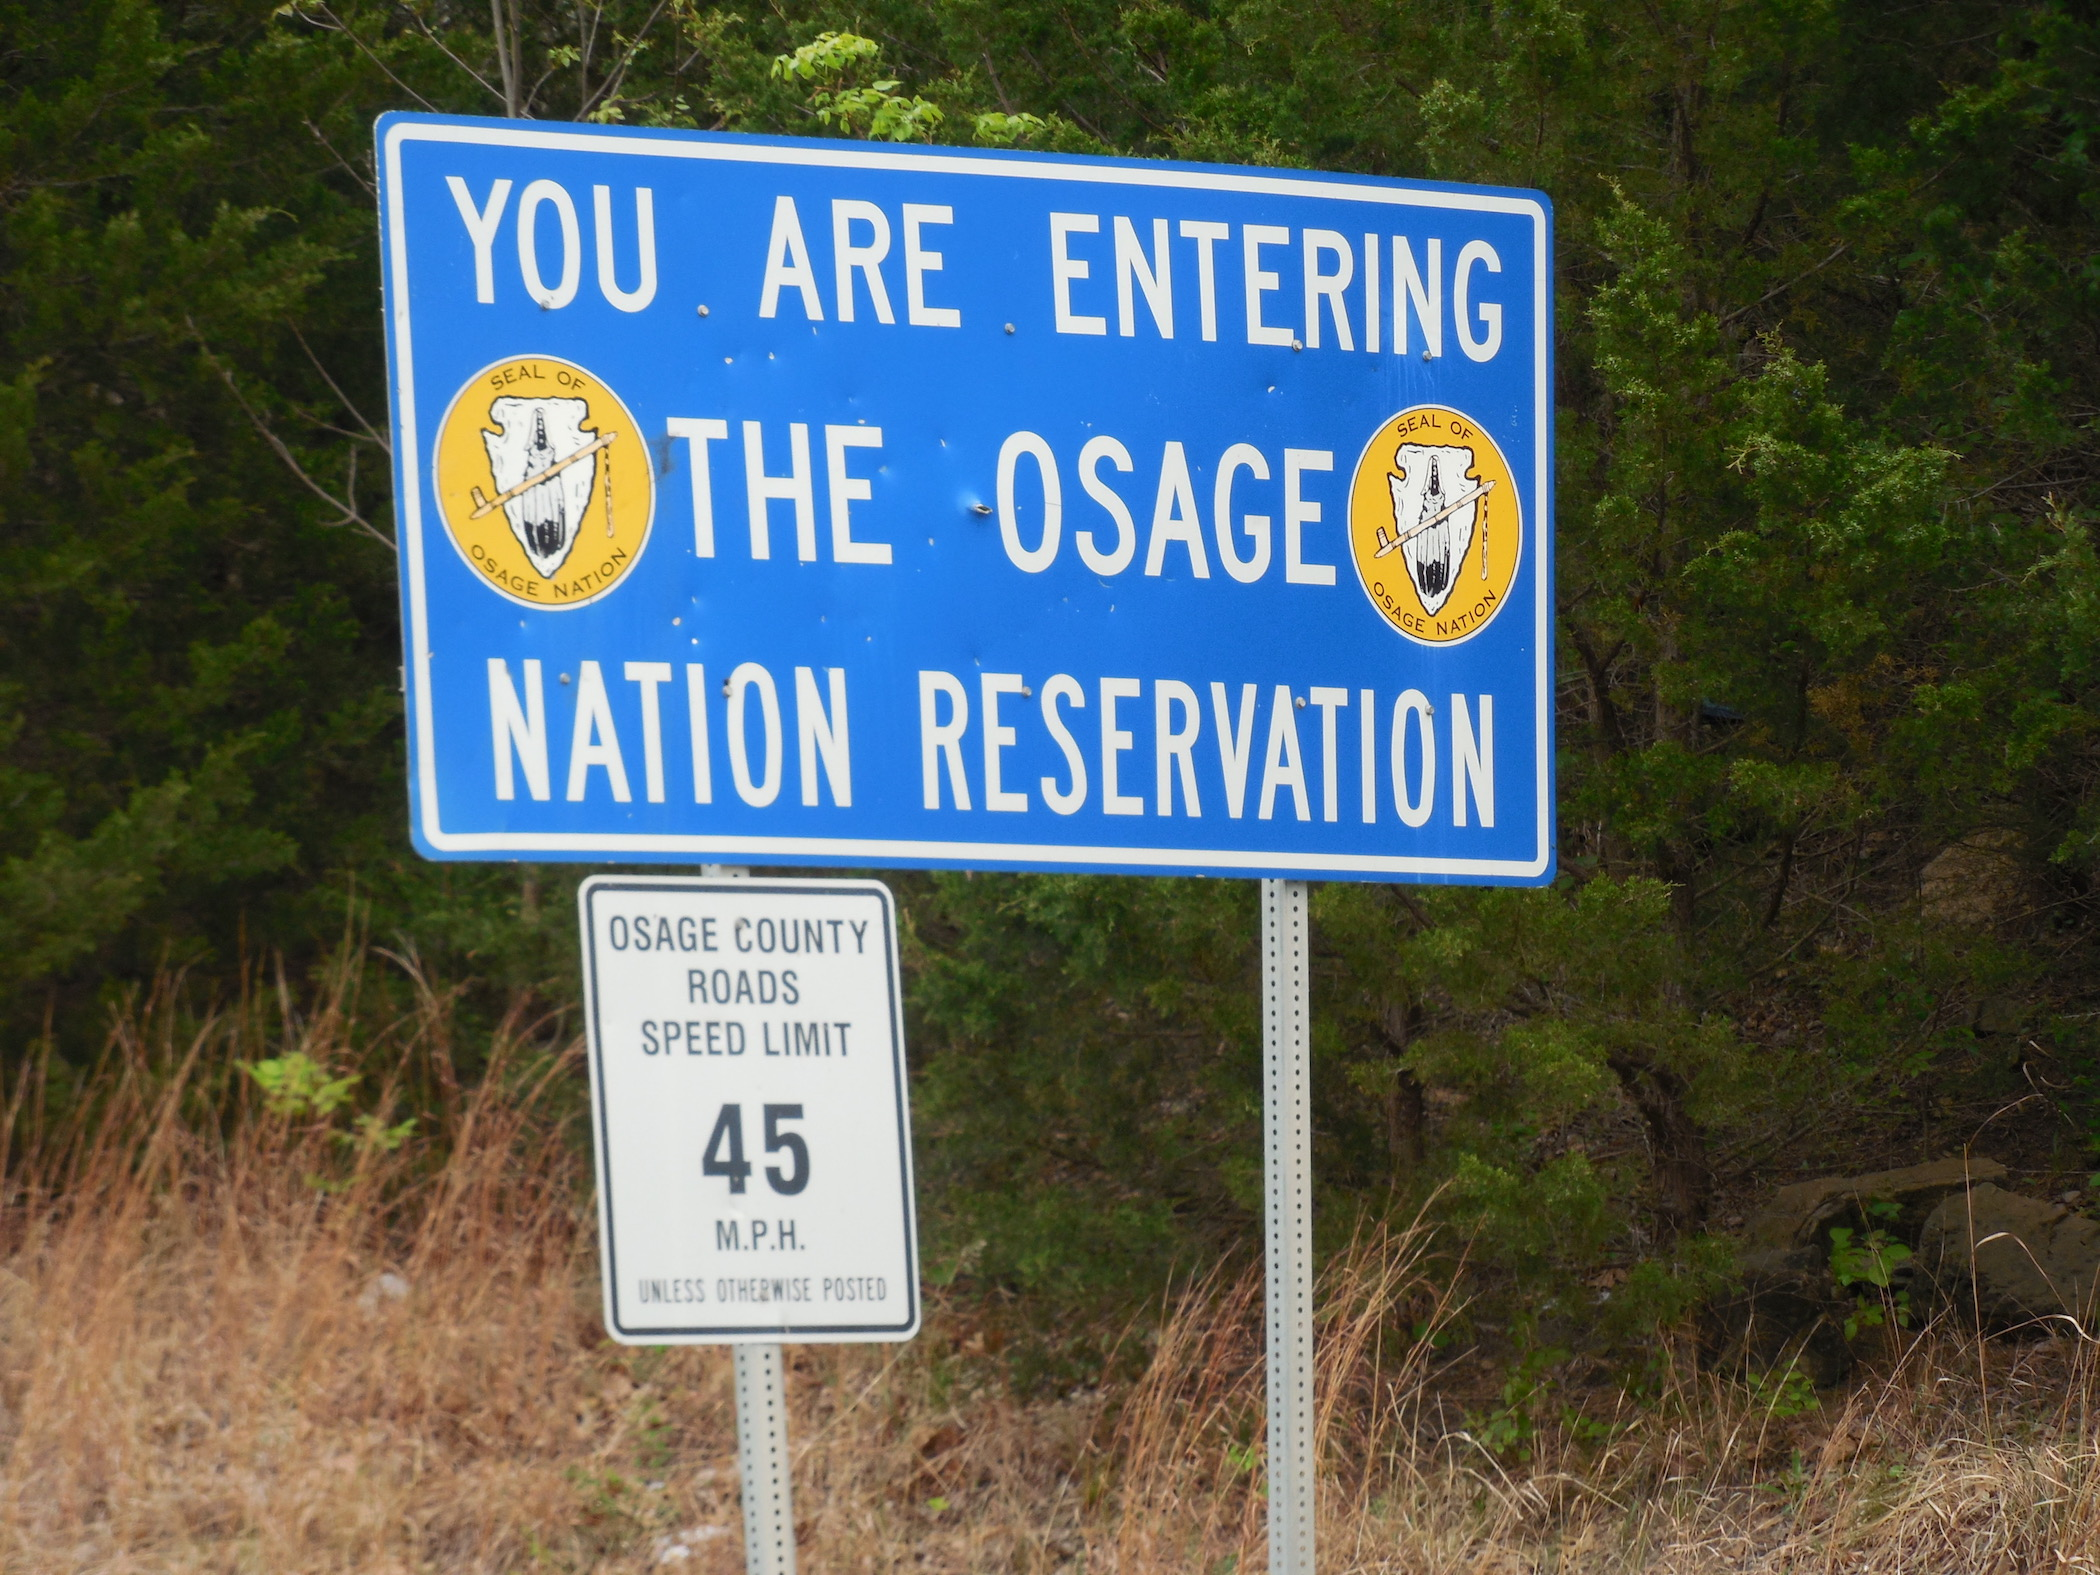 Osage Nation prepared to fight state over water rights on historic reservation